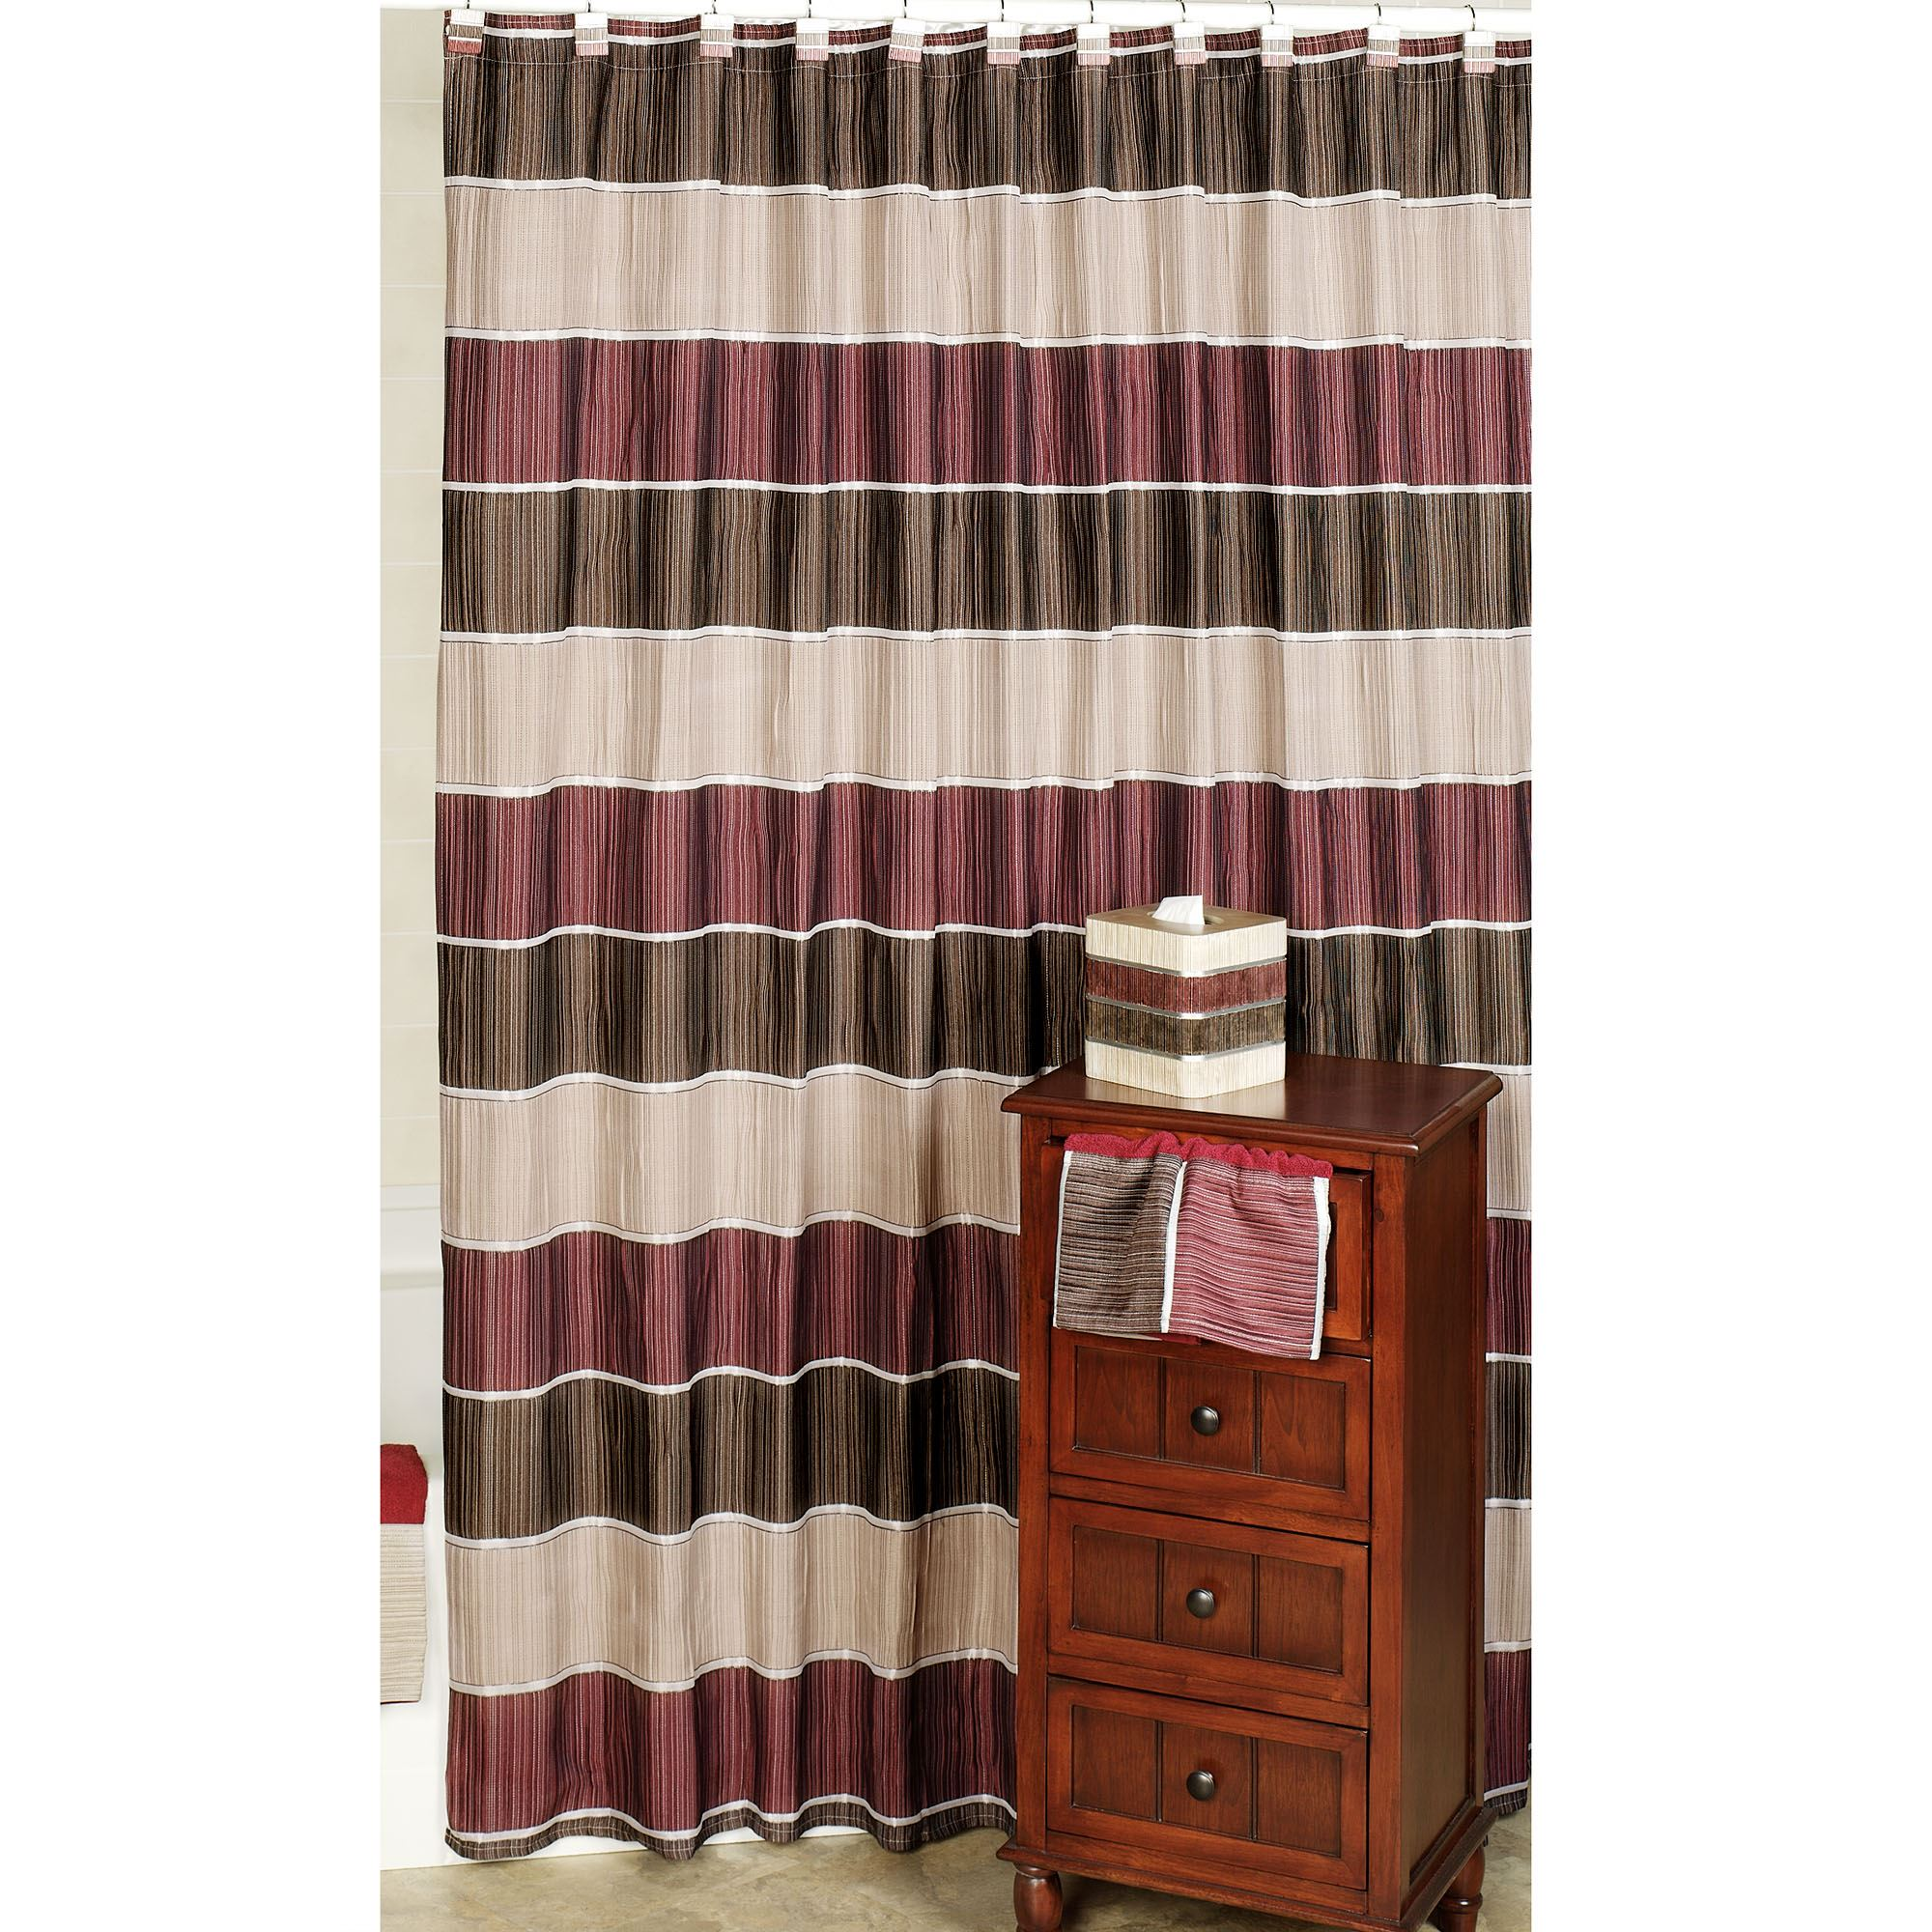 Modern Line Burgundy Striped Shower Curtain